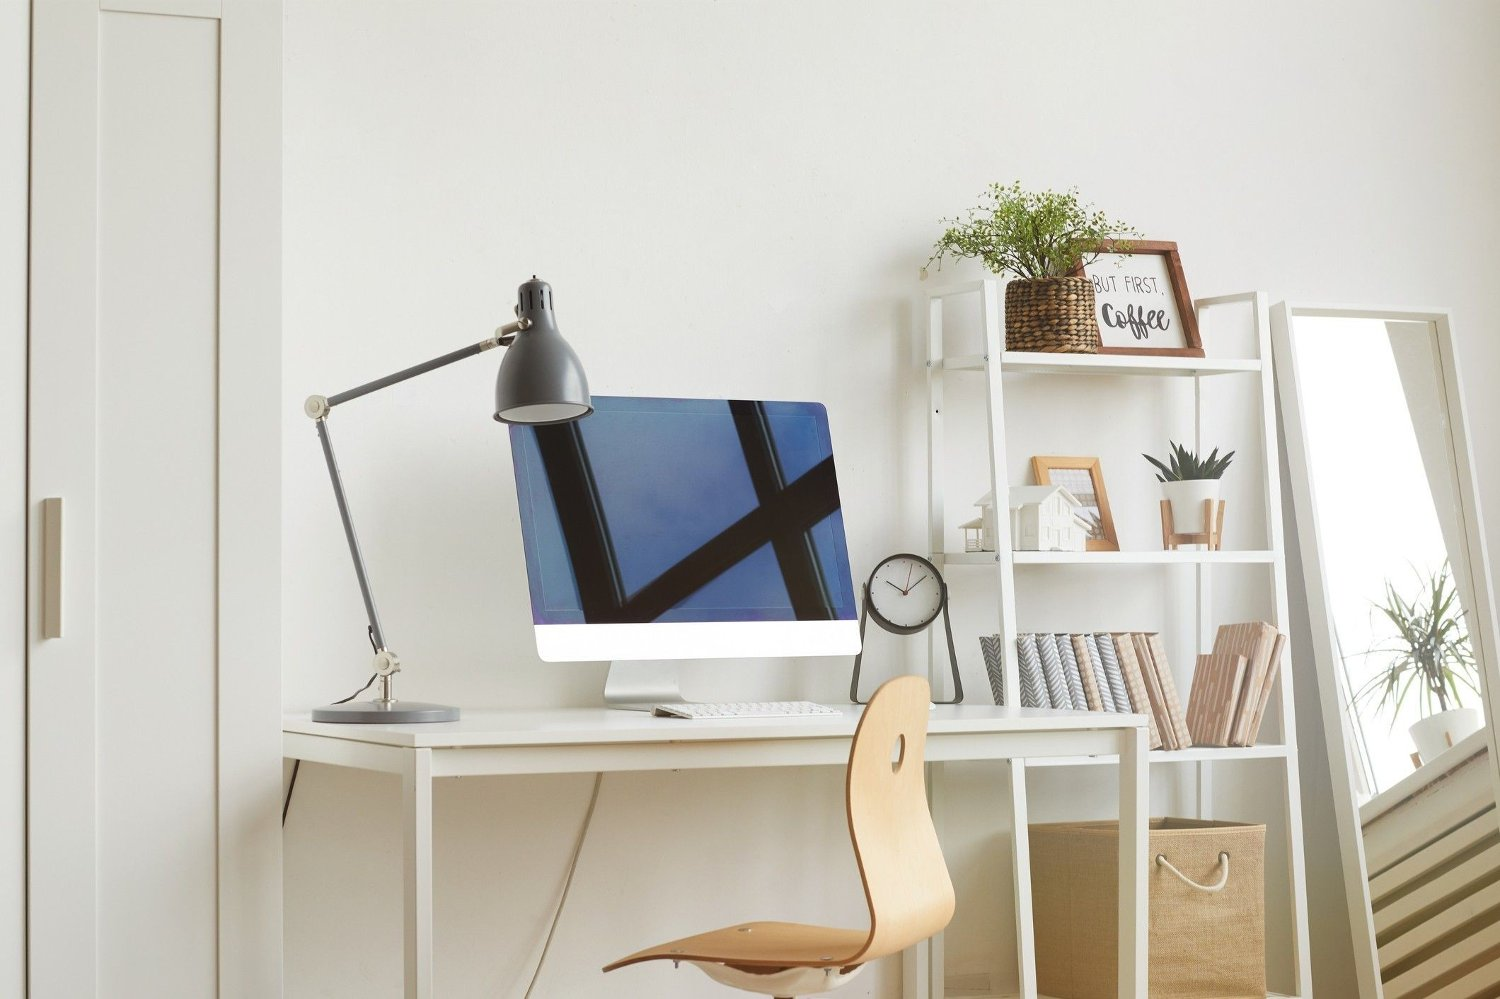 Minimal Design Ideas for Home Office White Background image of empty home office workplace with wooden chair and modern computer on white desk, copy space